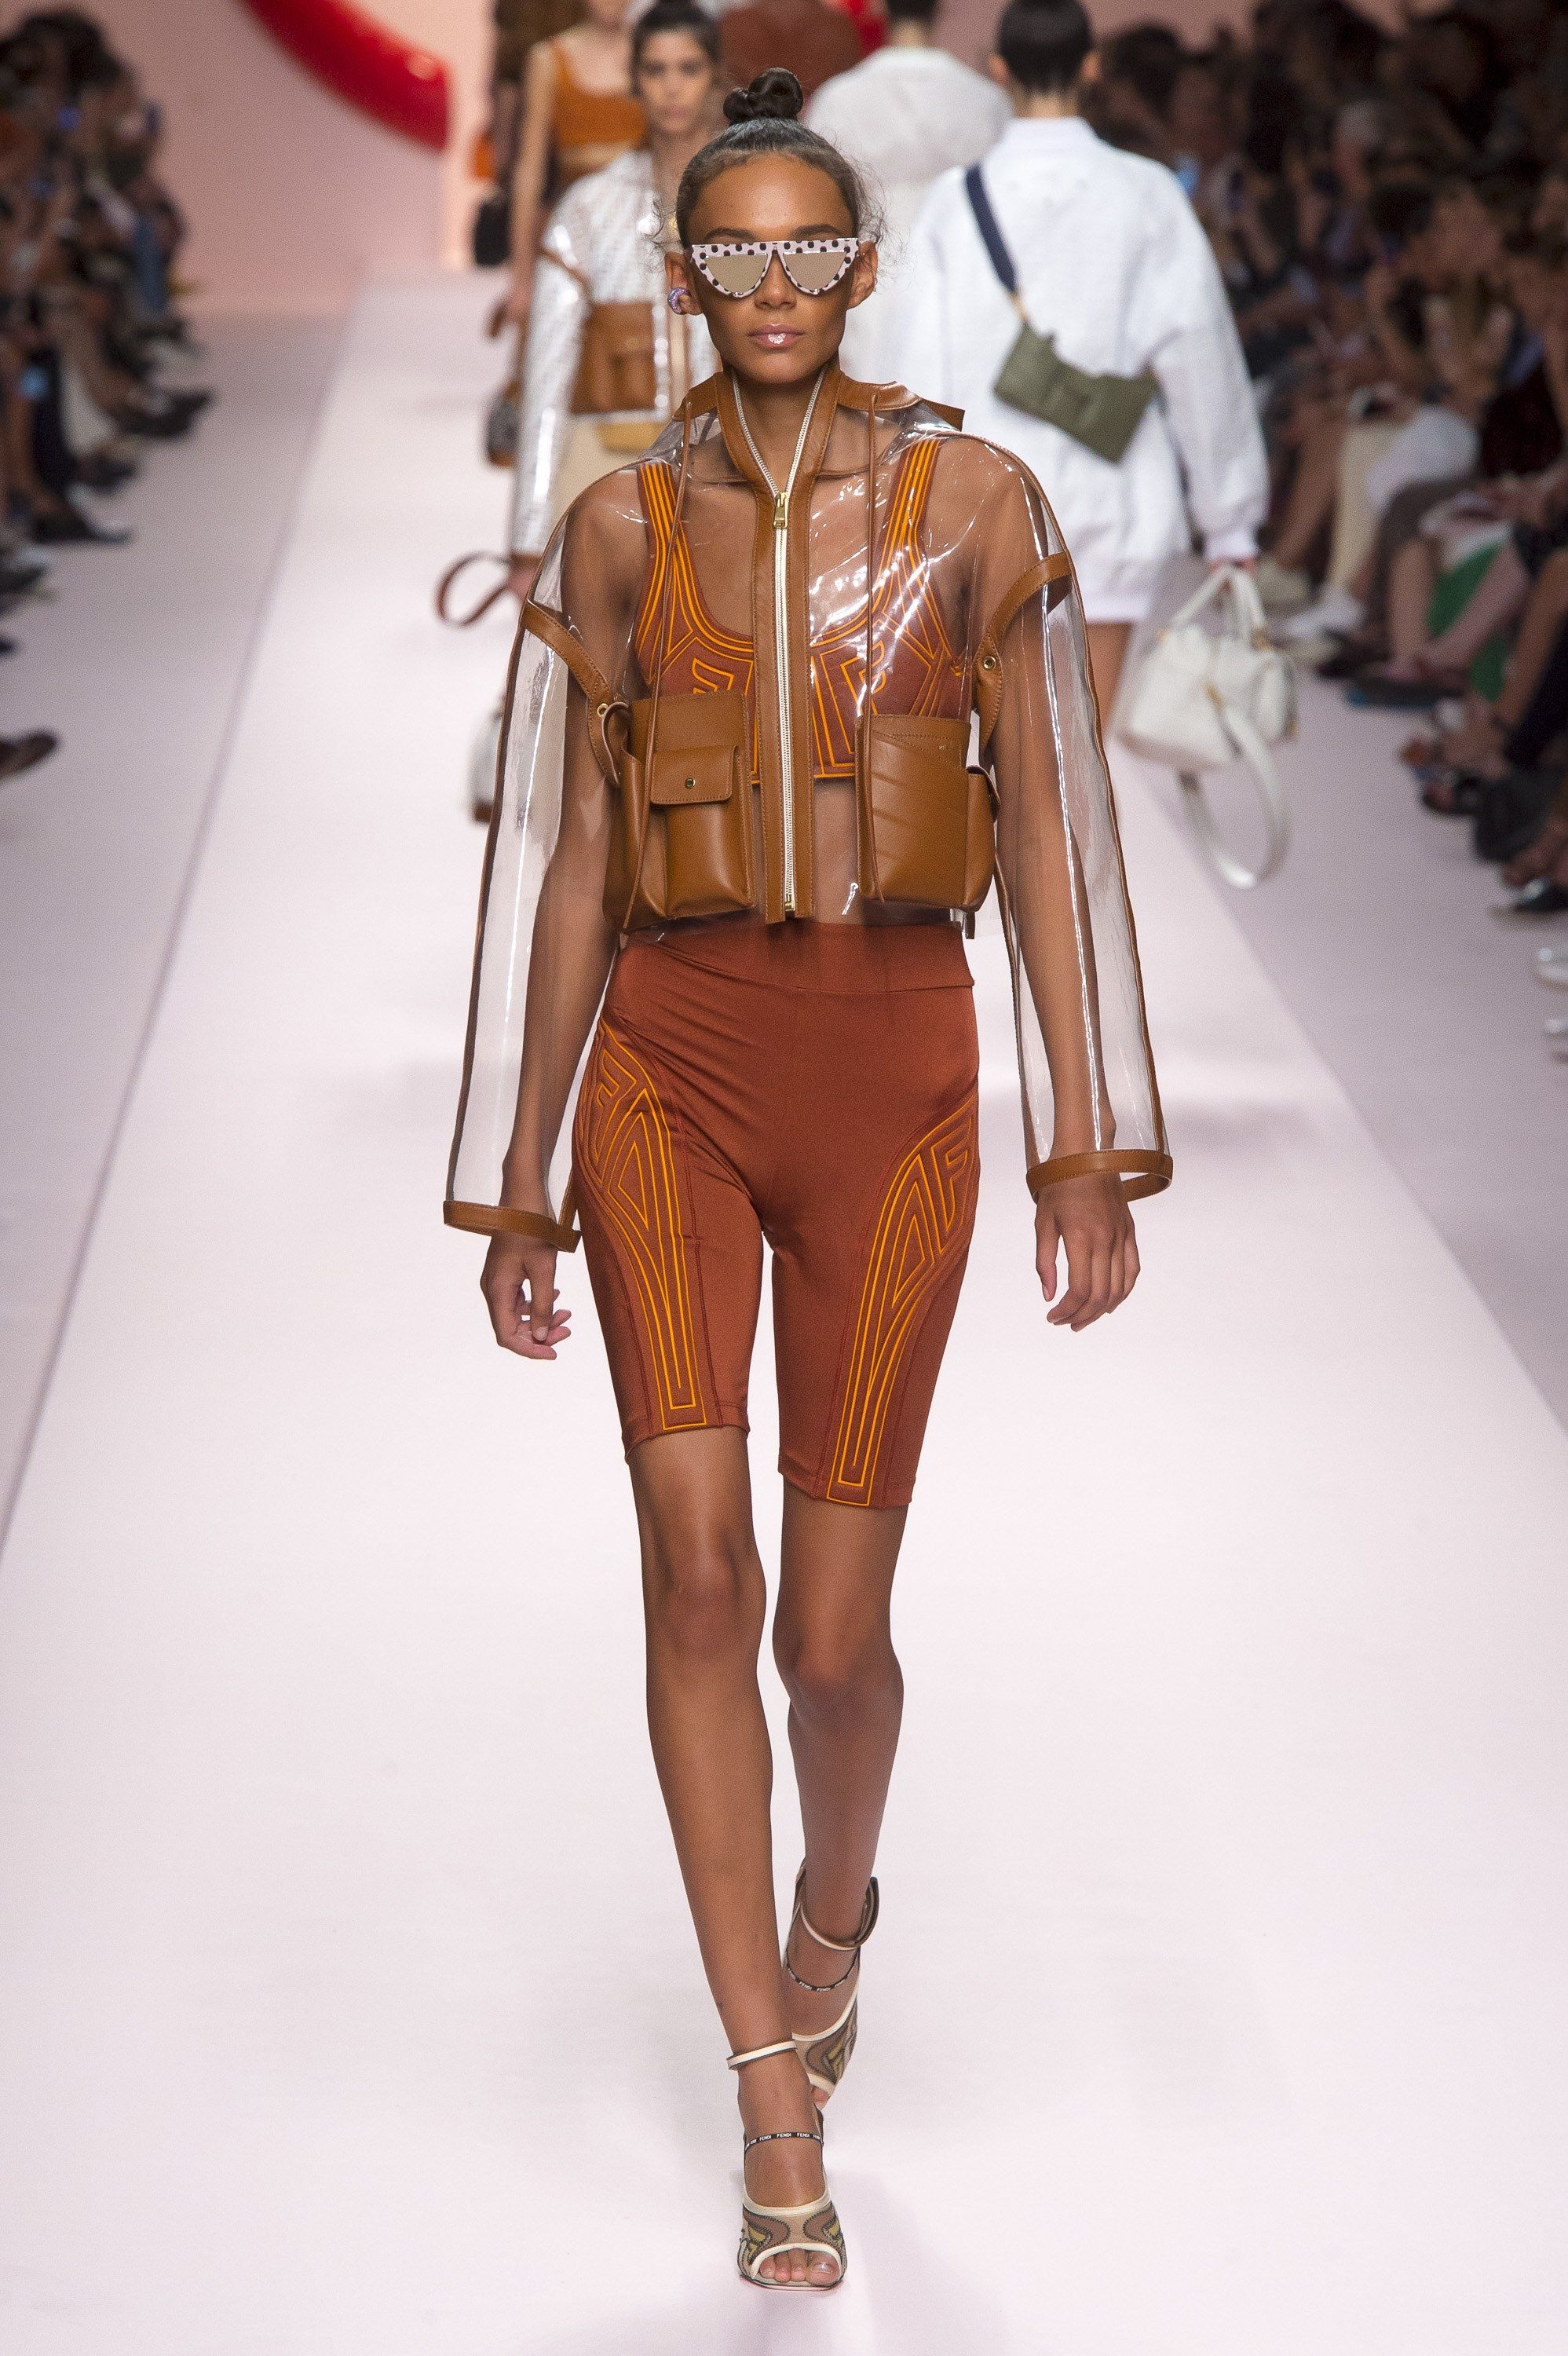 d9d157e584367 Fendi Spring 2019 Ready-to-Wear Collection - Vogue